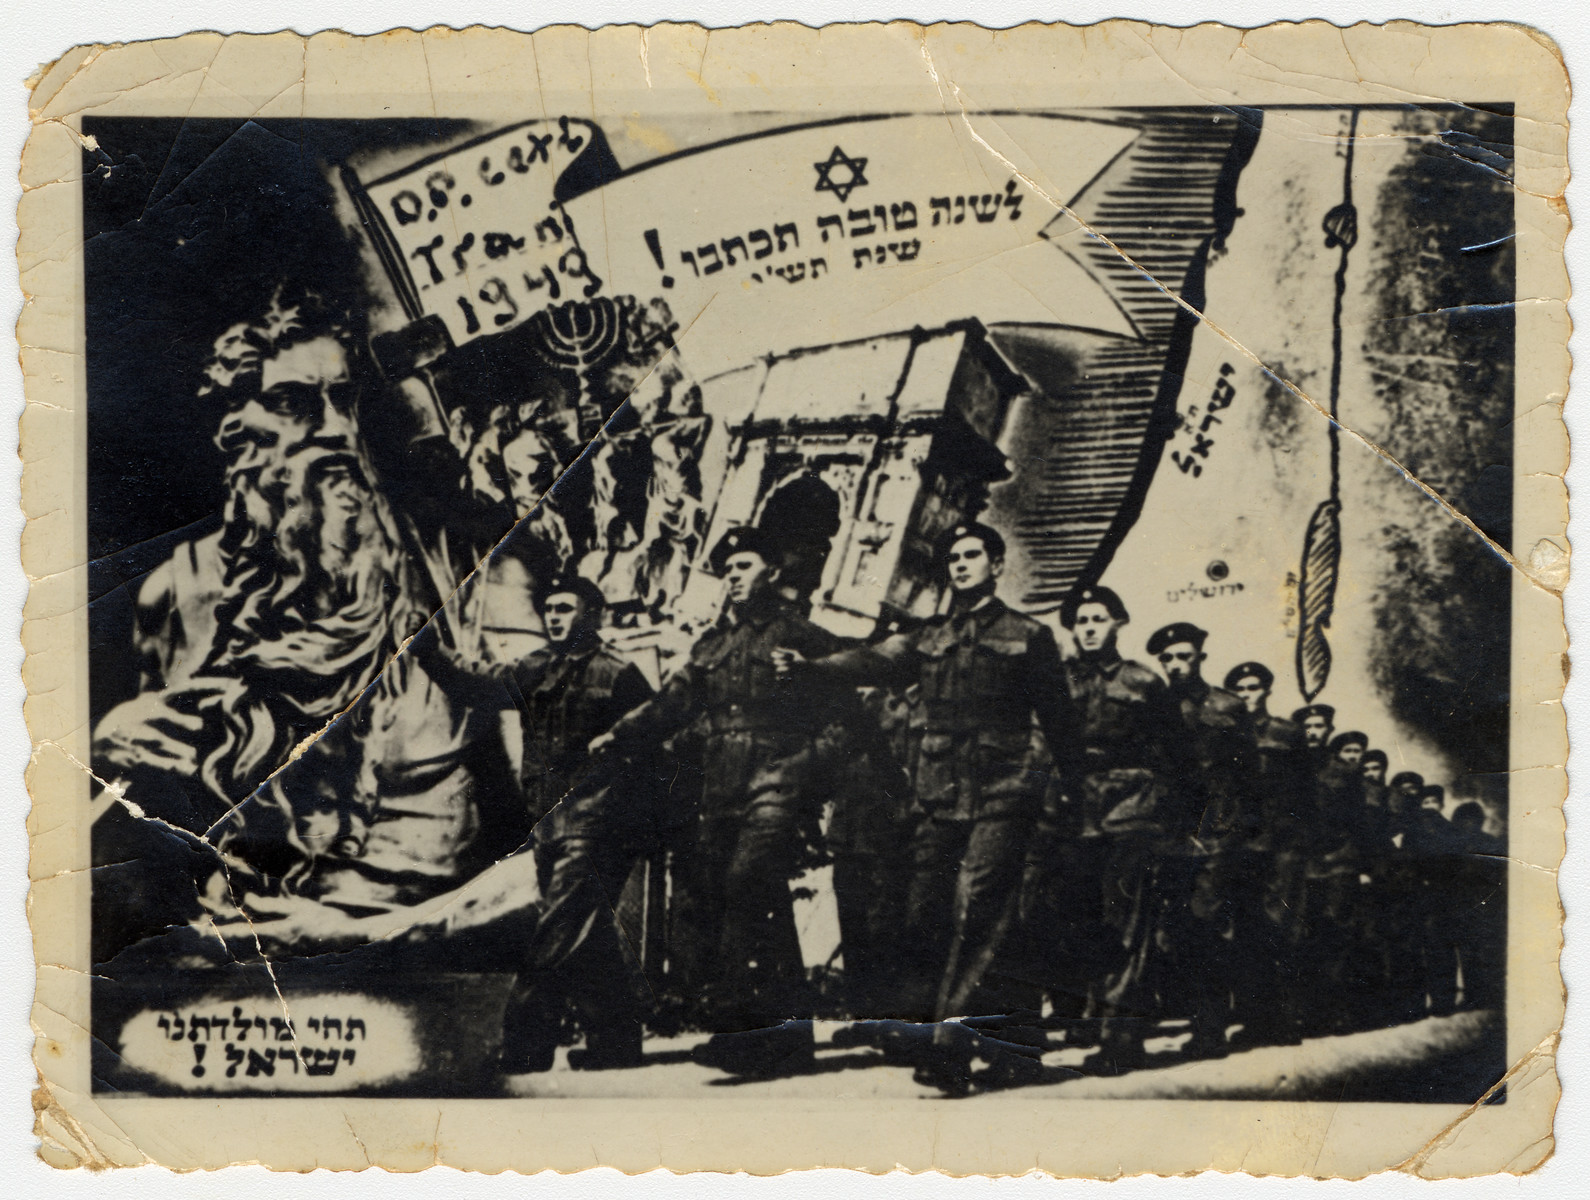 A Jewish New Year greeting card sent from Trani displaced persons' camp and depicting a marching army and works of art such as Michelangelo's Moses, the Arch of Titus and a low relief from the same Arch.